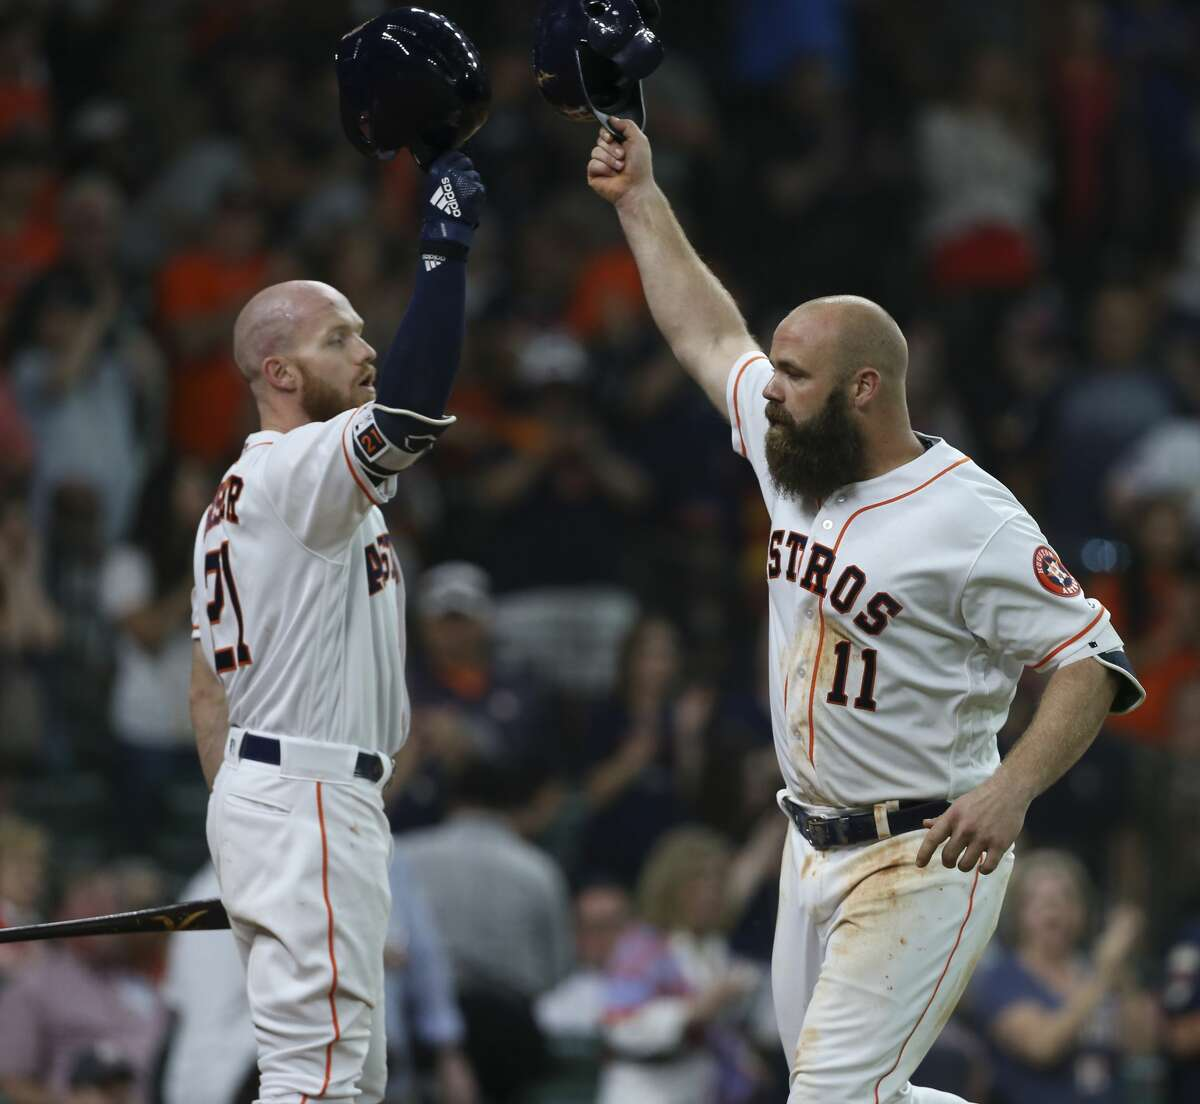 Houston Astros catcher Evan Gattis (11) and Derek Fisher (21) touch helmets to celebrate Gattis' home run during the bottom fifth inning of the MLB game at Minute Maid Park on Saturday, May 12, 2018, in Houston. ( Yi-Chin Lee / Houston Chronicle )